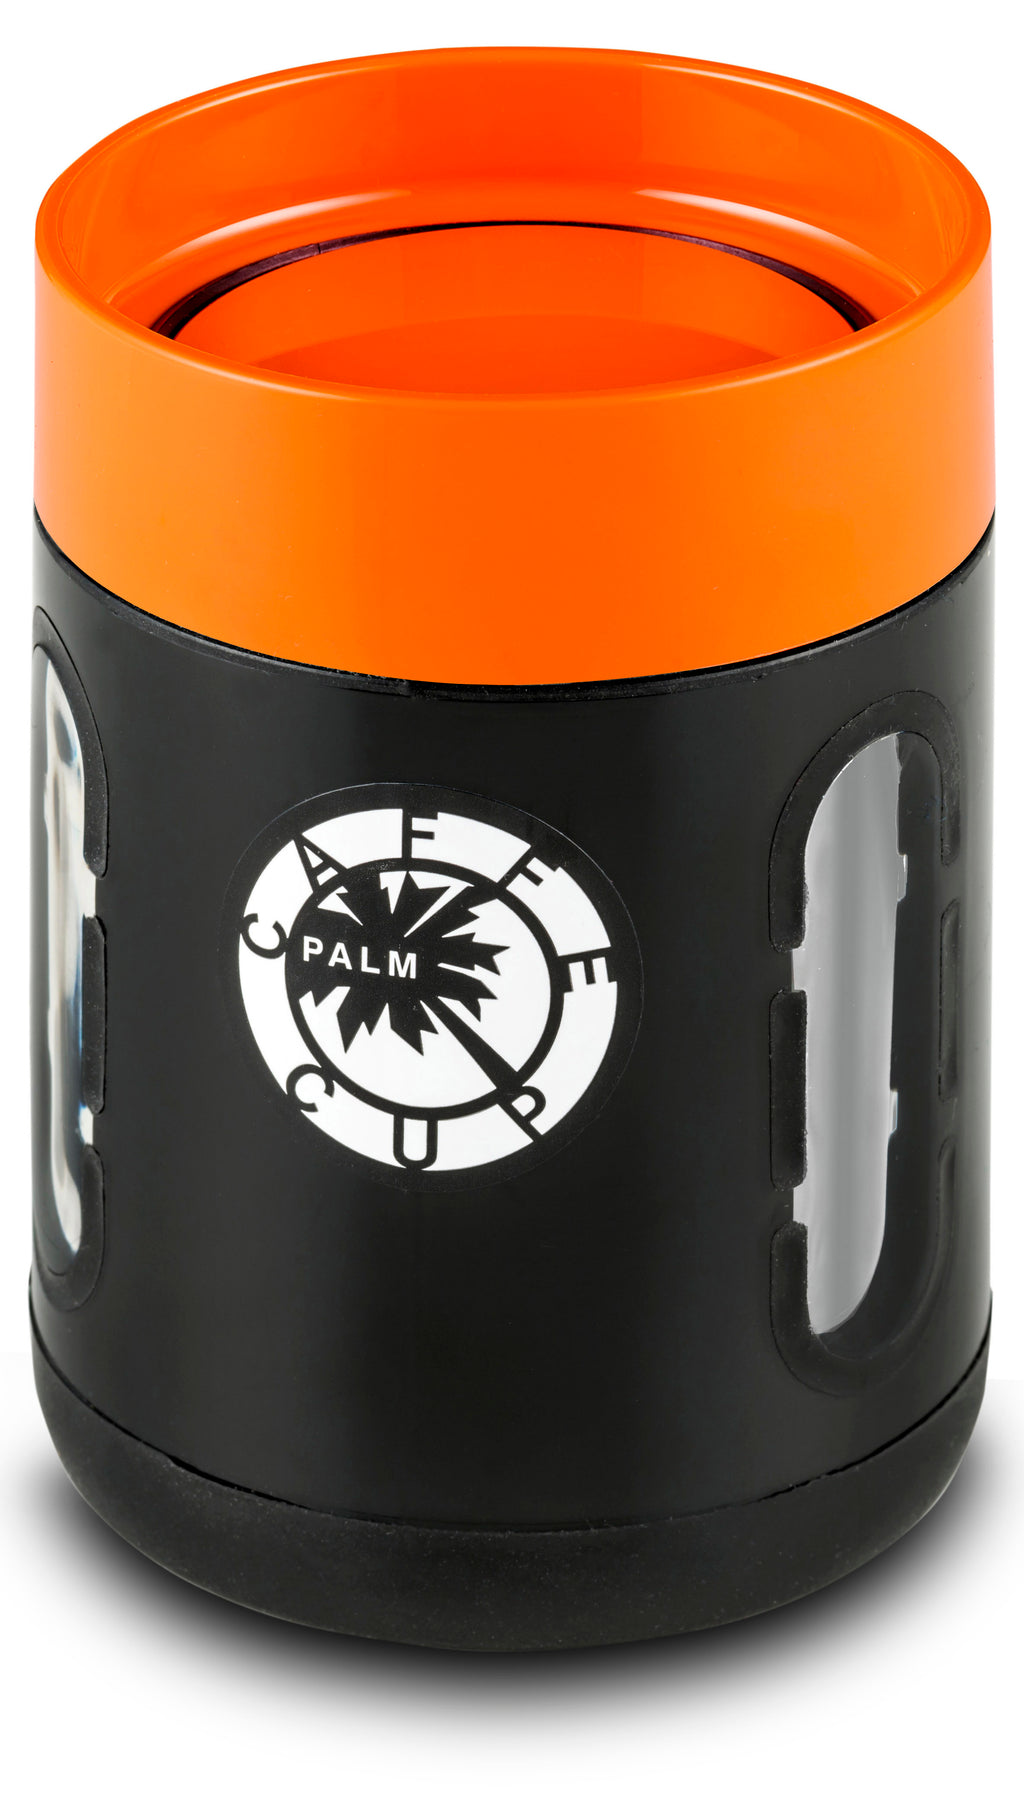 Palm Caffe Cup - Black/Orange